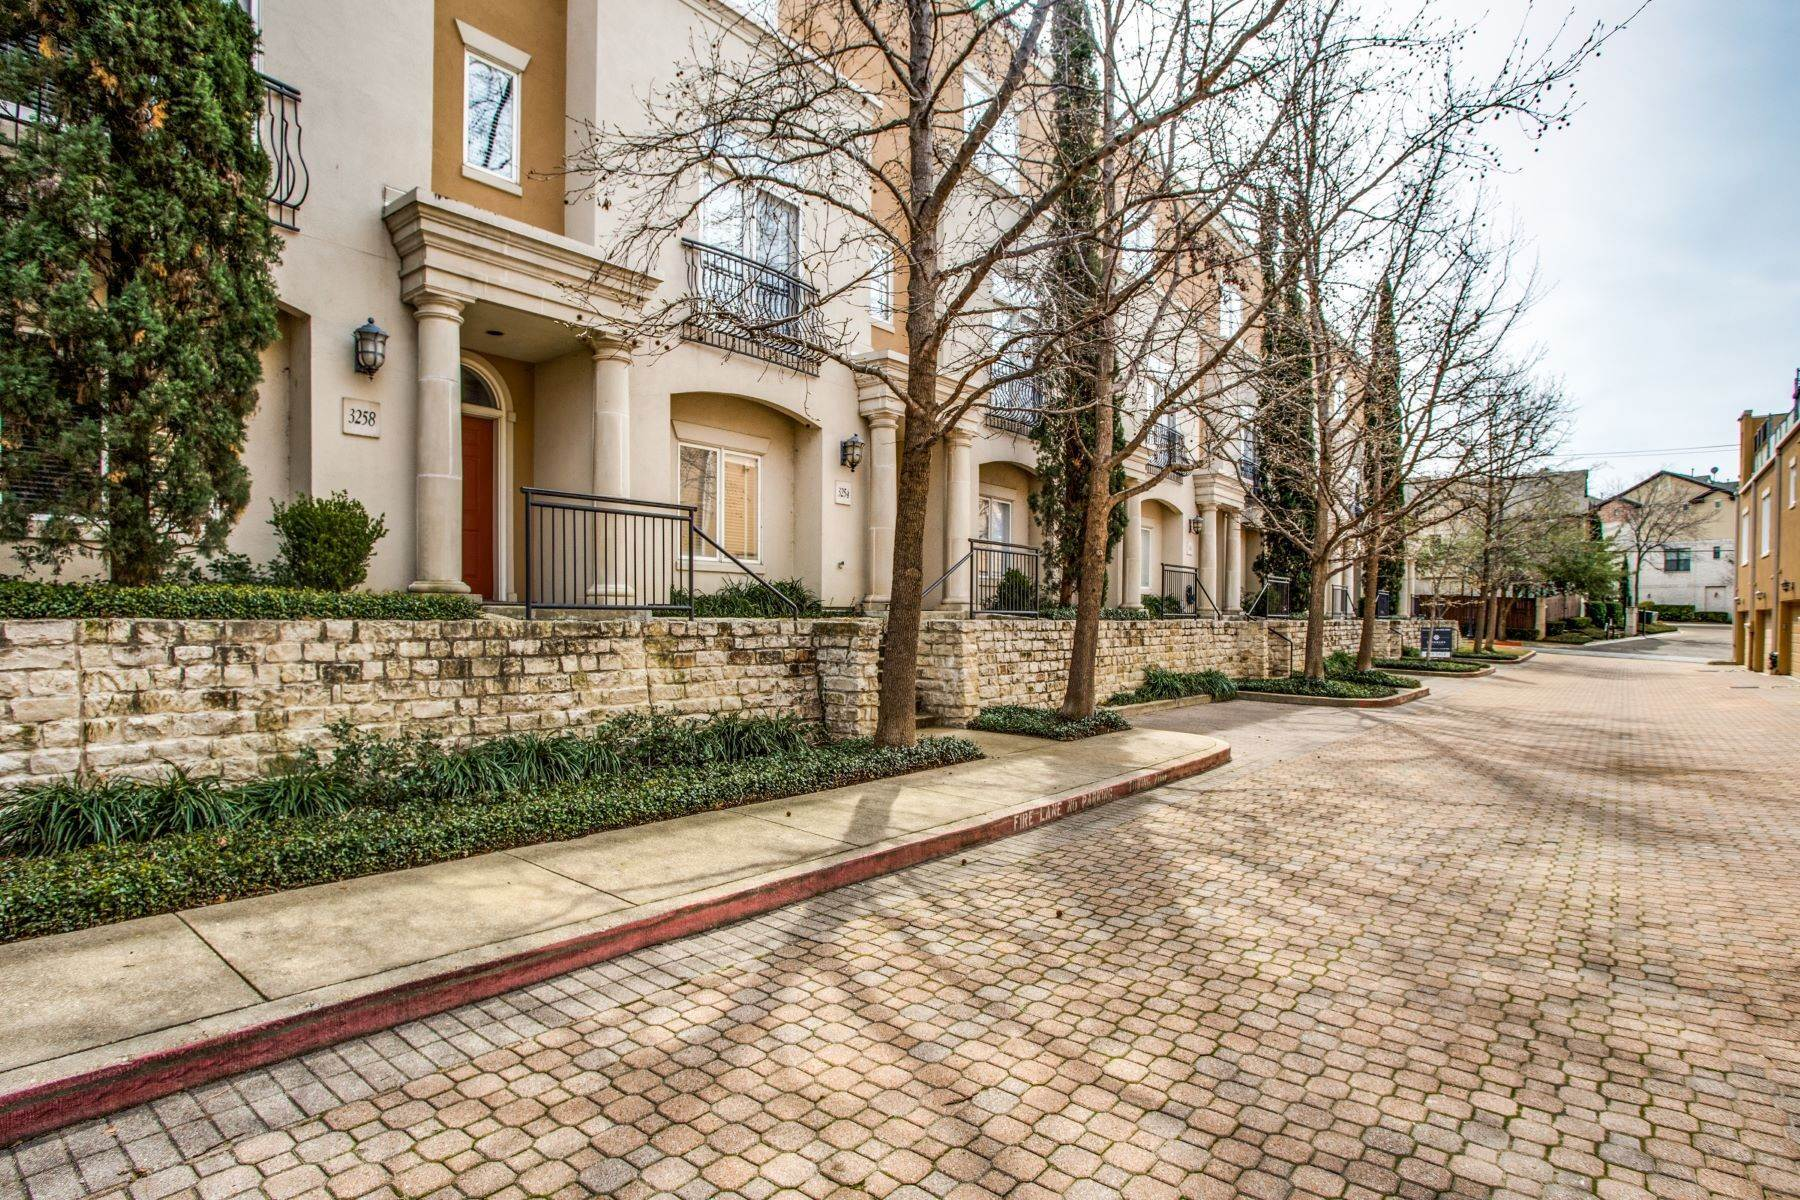 townhouses for Sale at 3258 N. Haskell Avenue Dallas, Texas 75204 United States